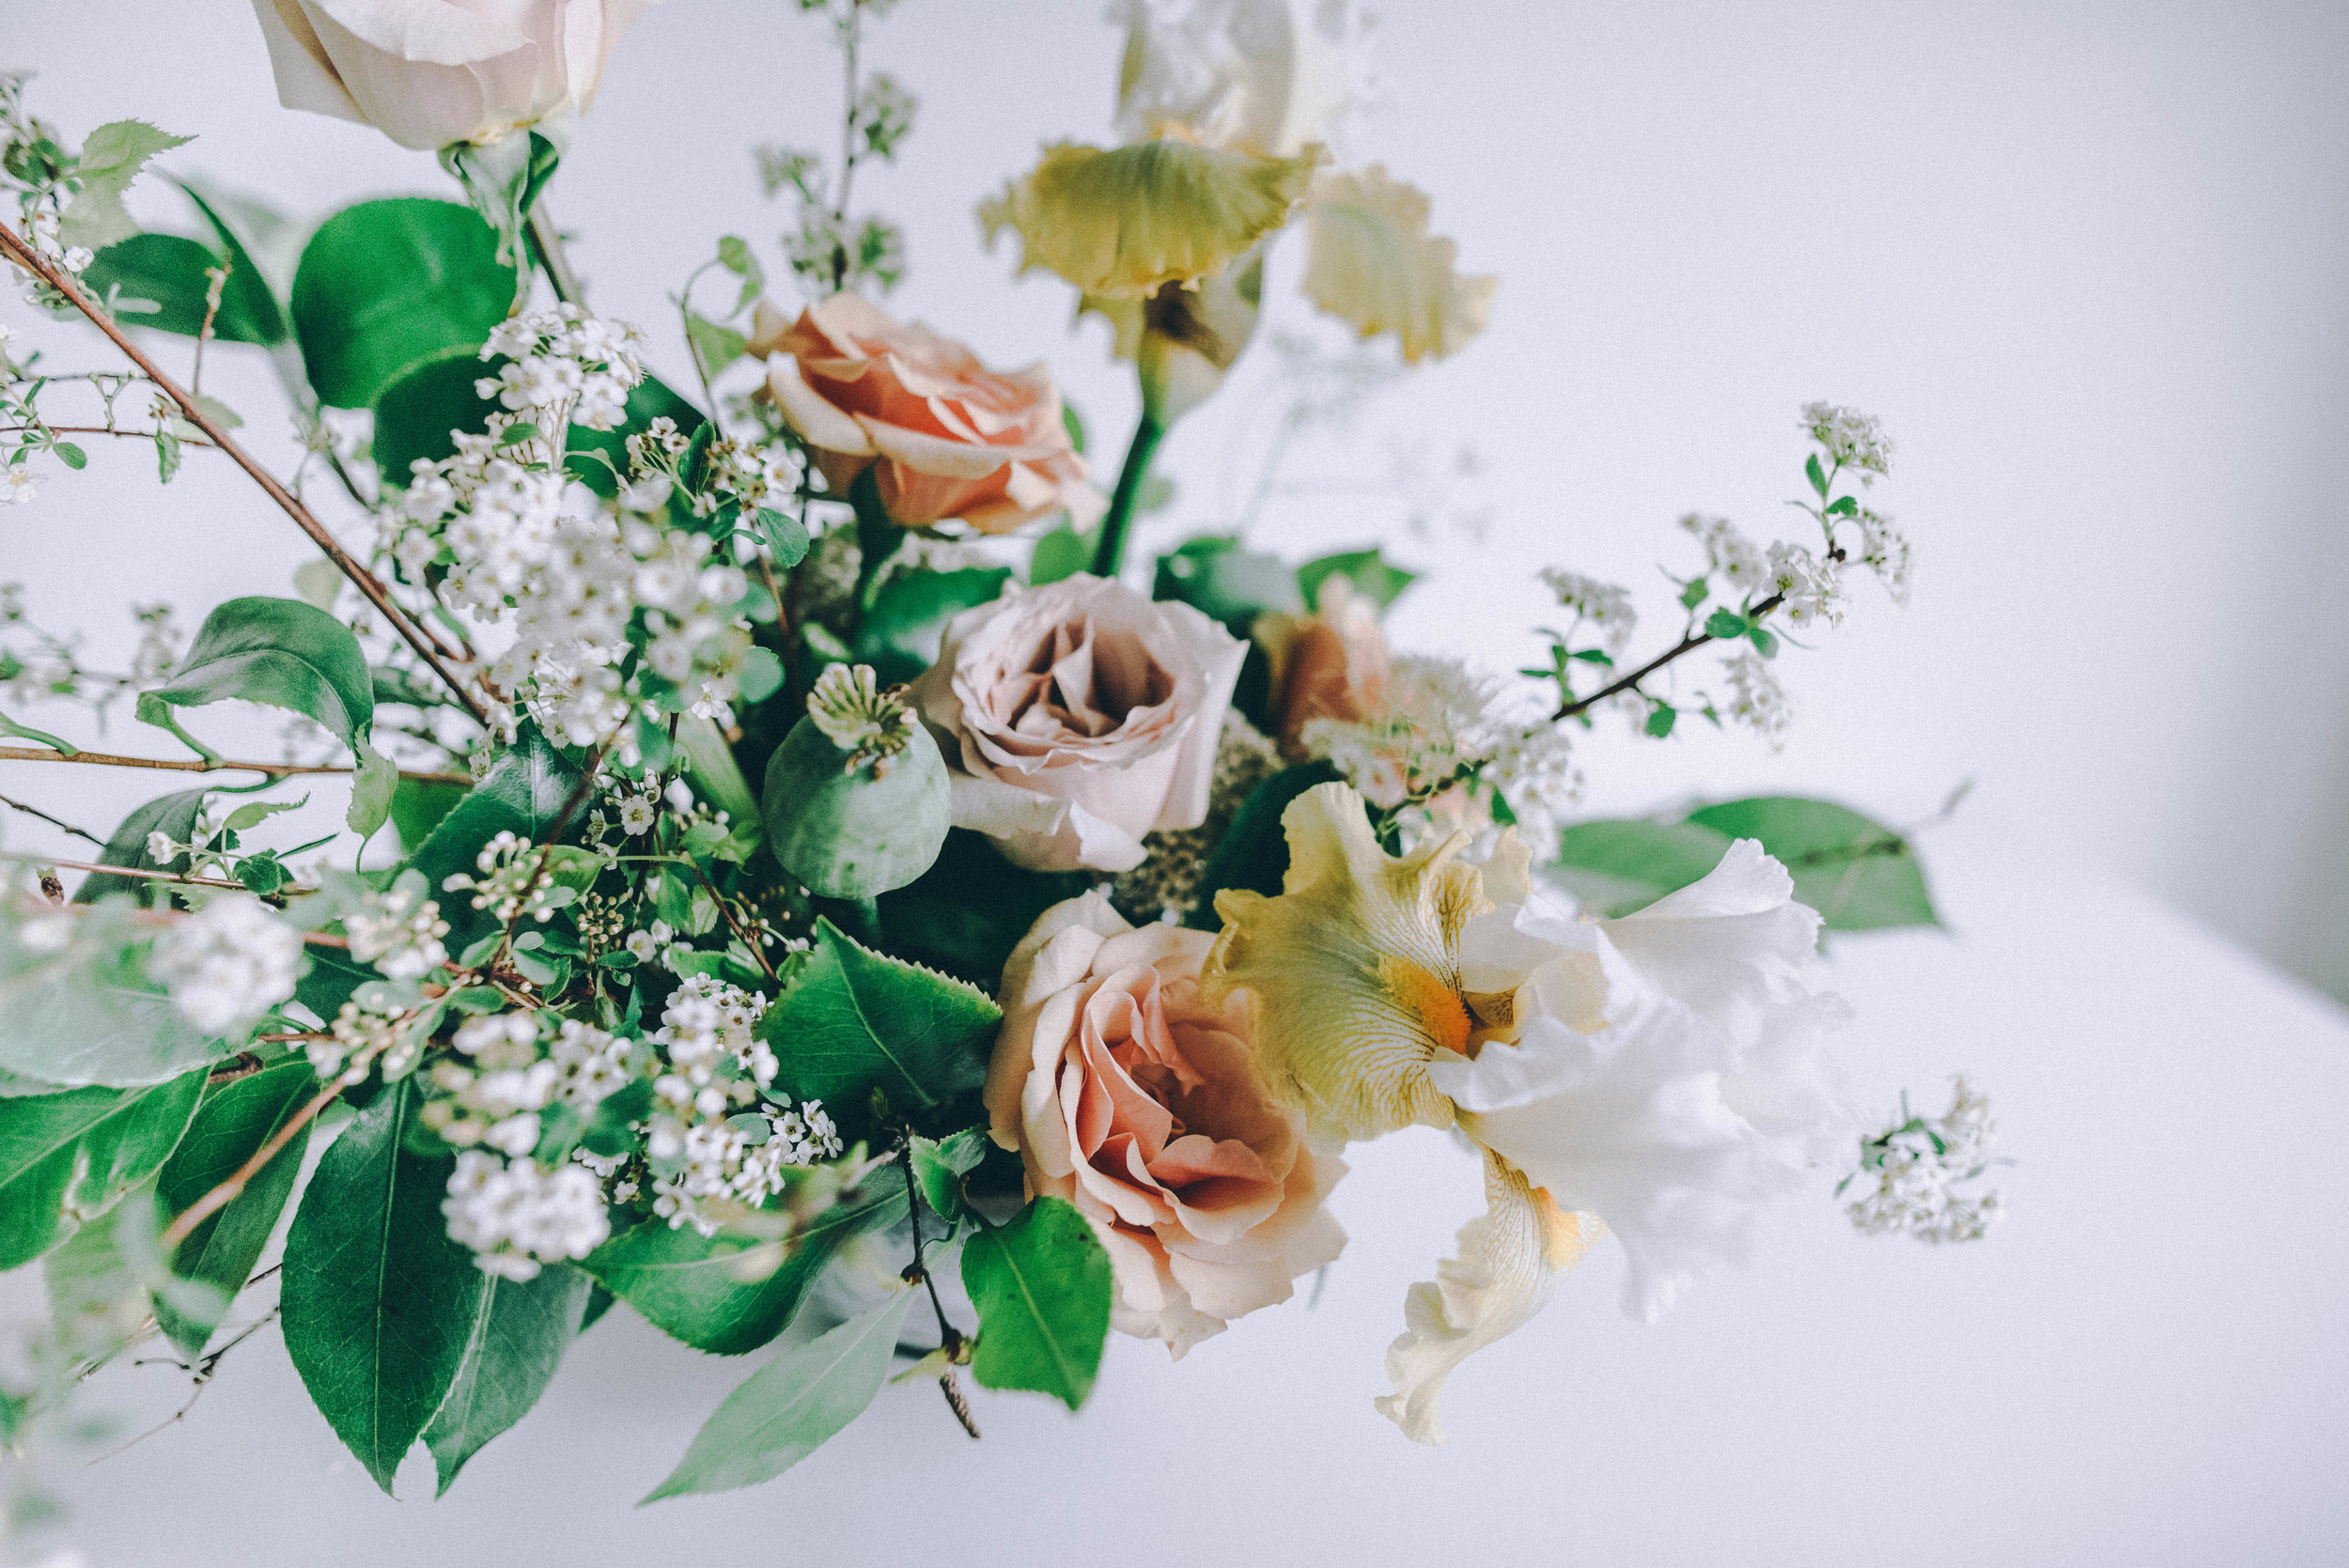 Floral by Nora wedding flowers (10 of 29).jpg